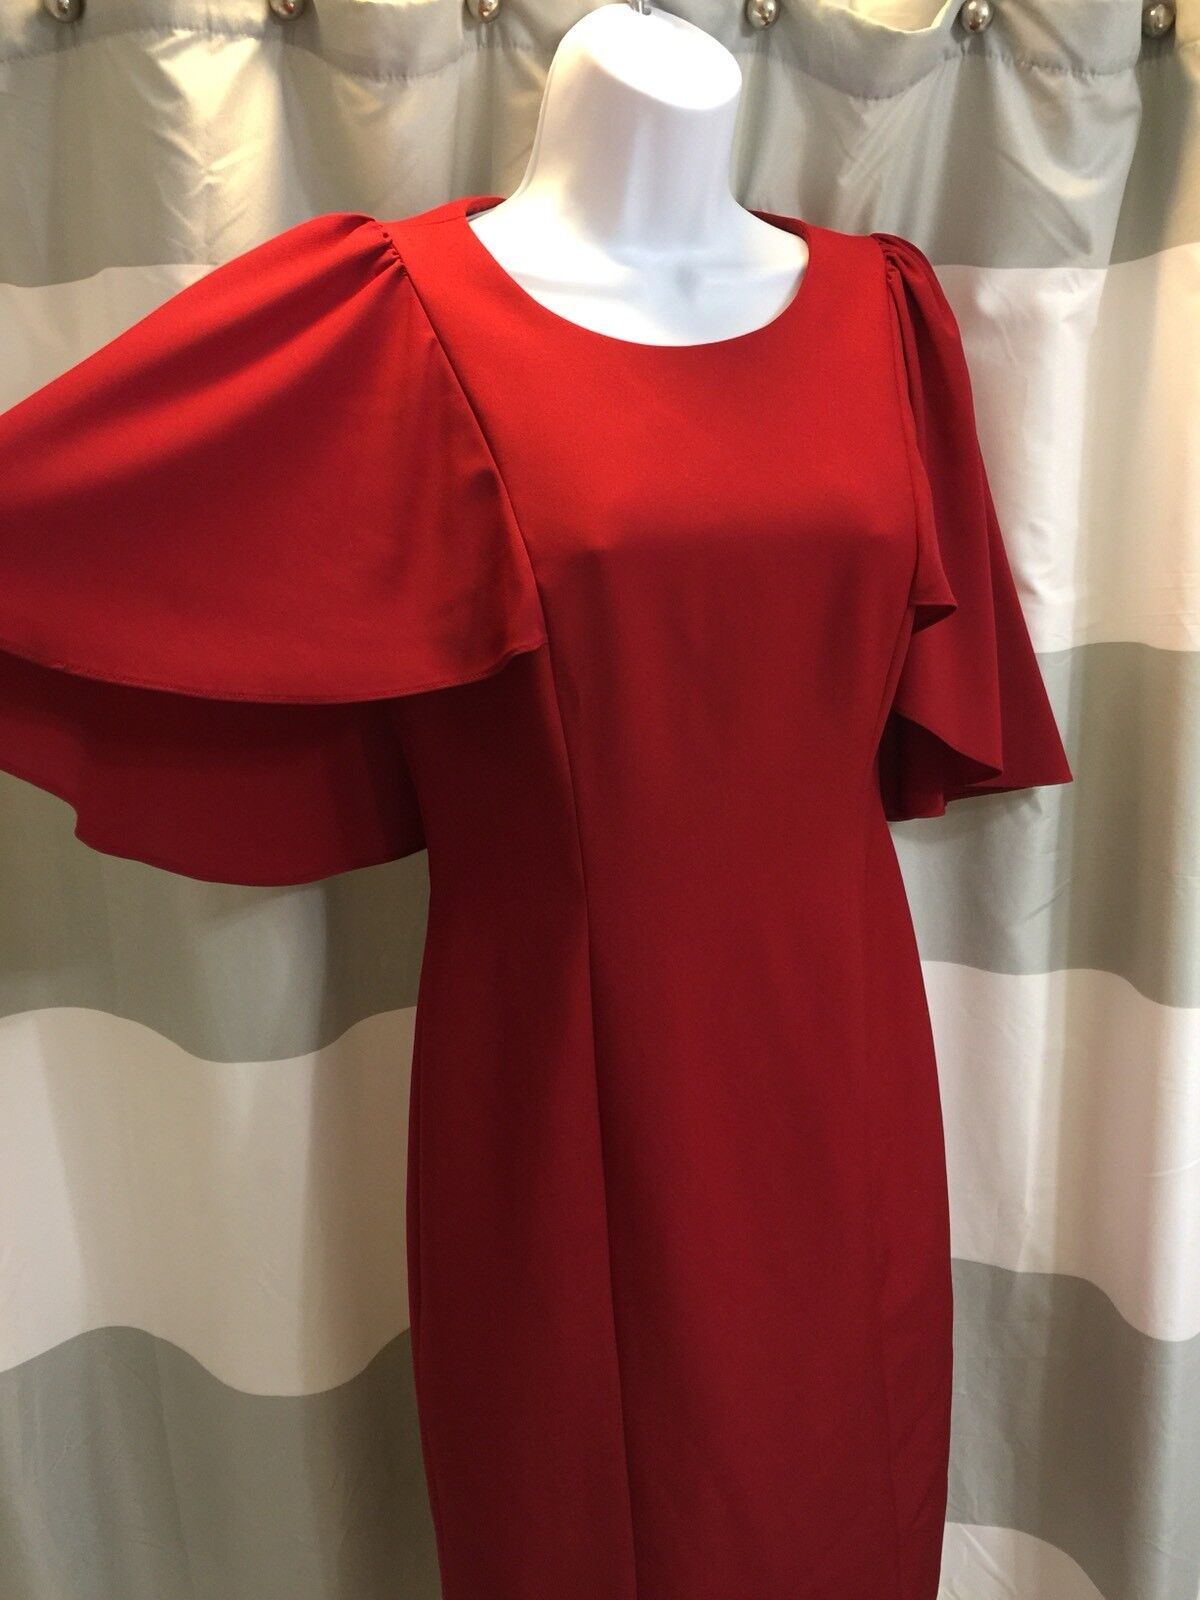 Antonio Melani Red Pencil Dress. Kimono Flutter Sleeves. Size 2